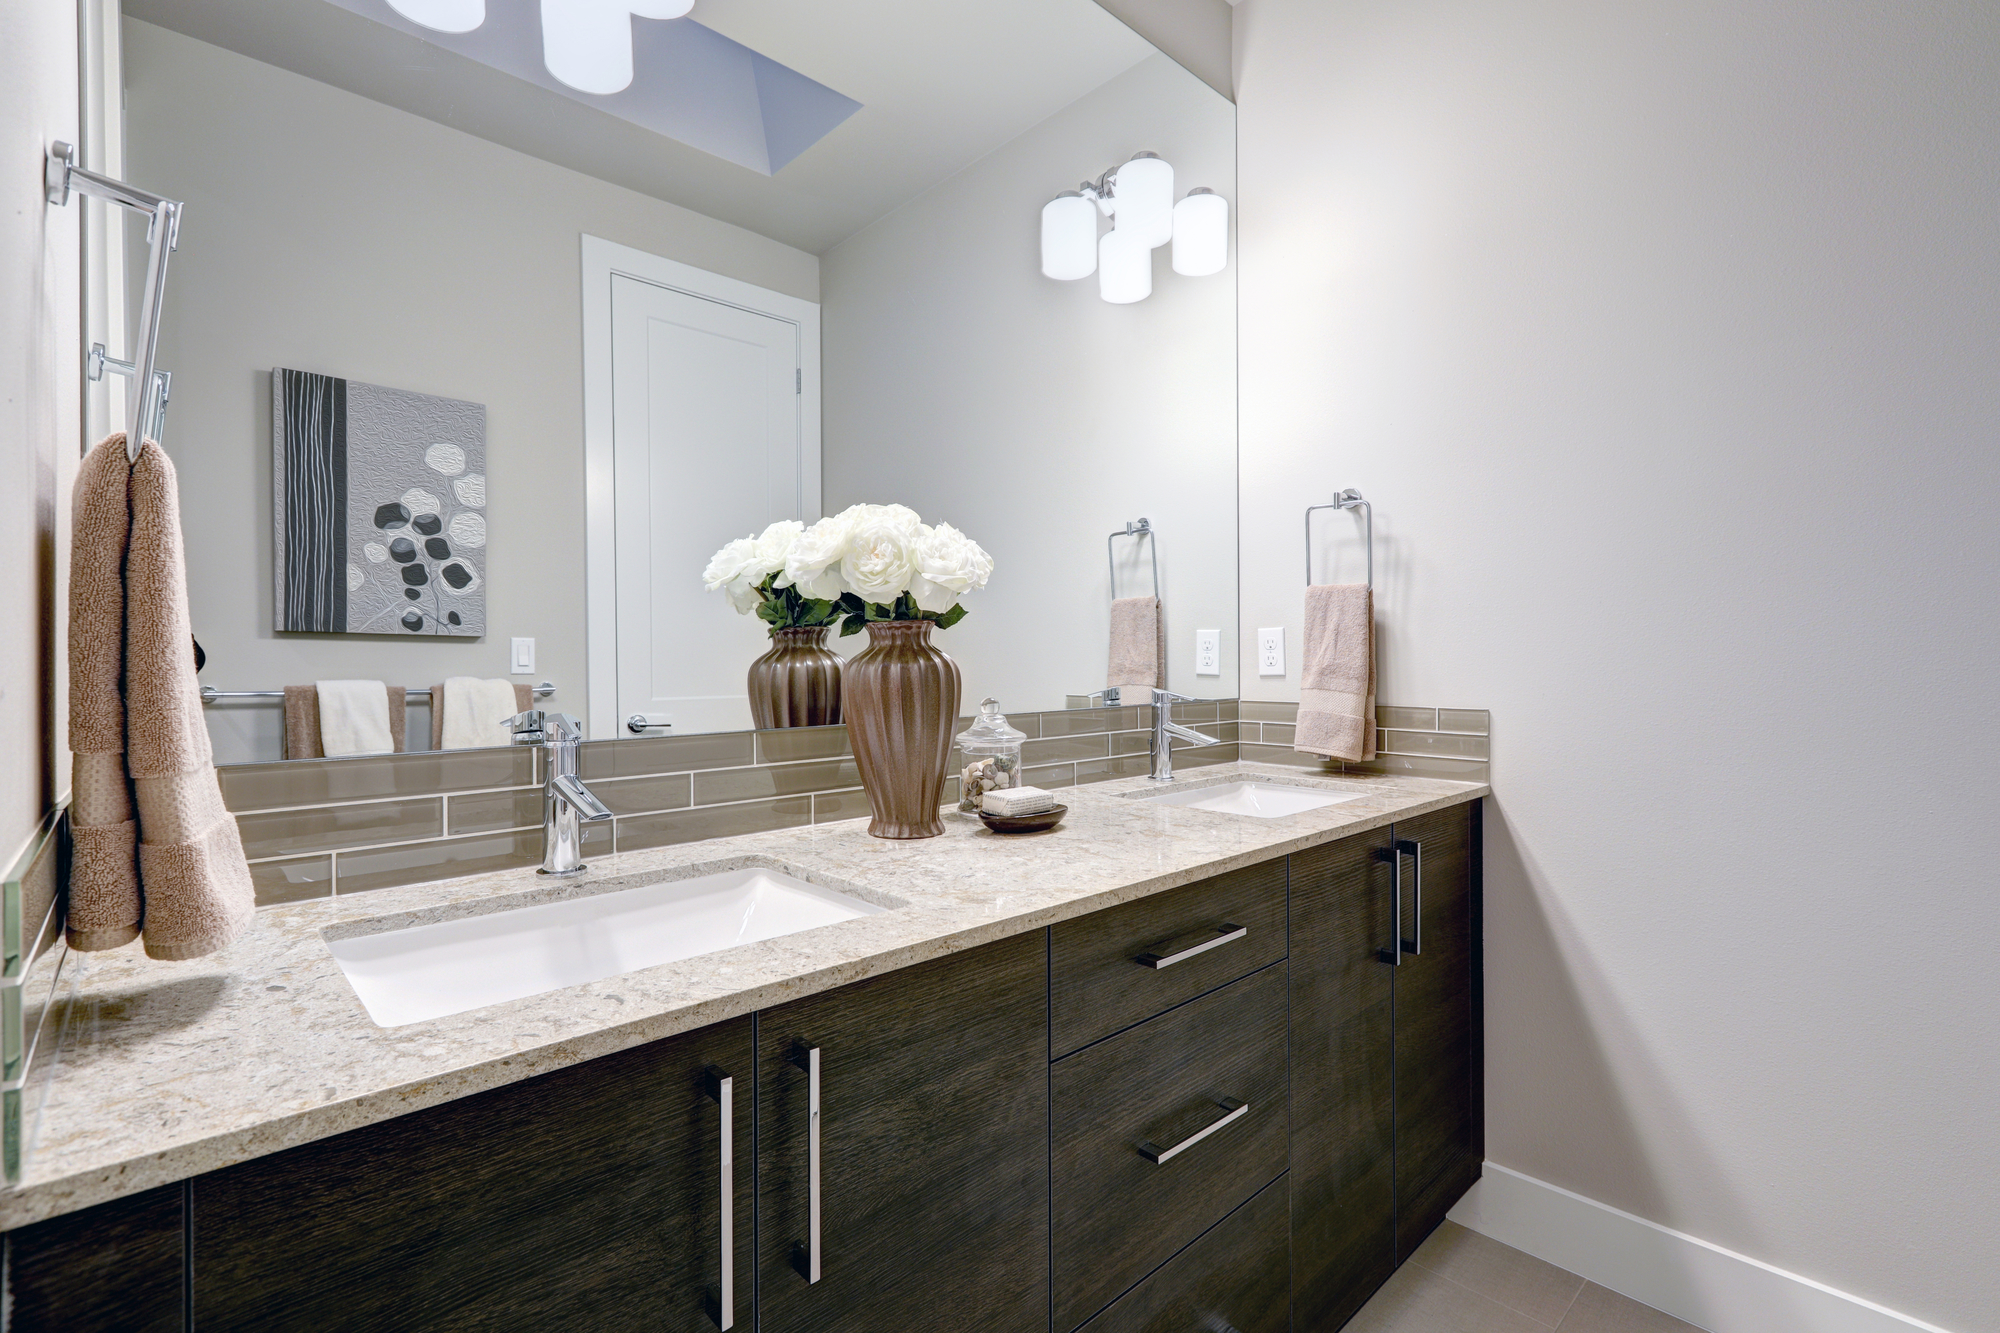 3 Luxurious Bathroom Remodeling Ideas Kessler Construction